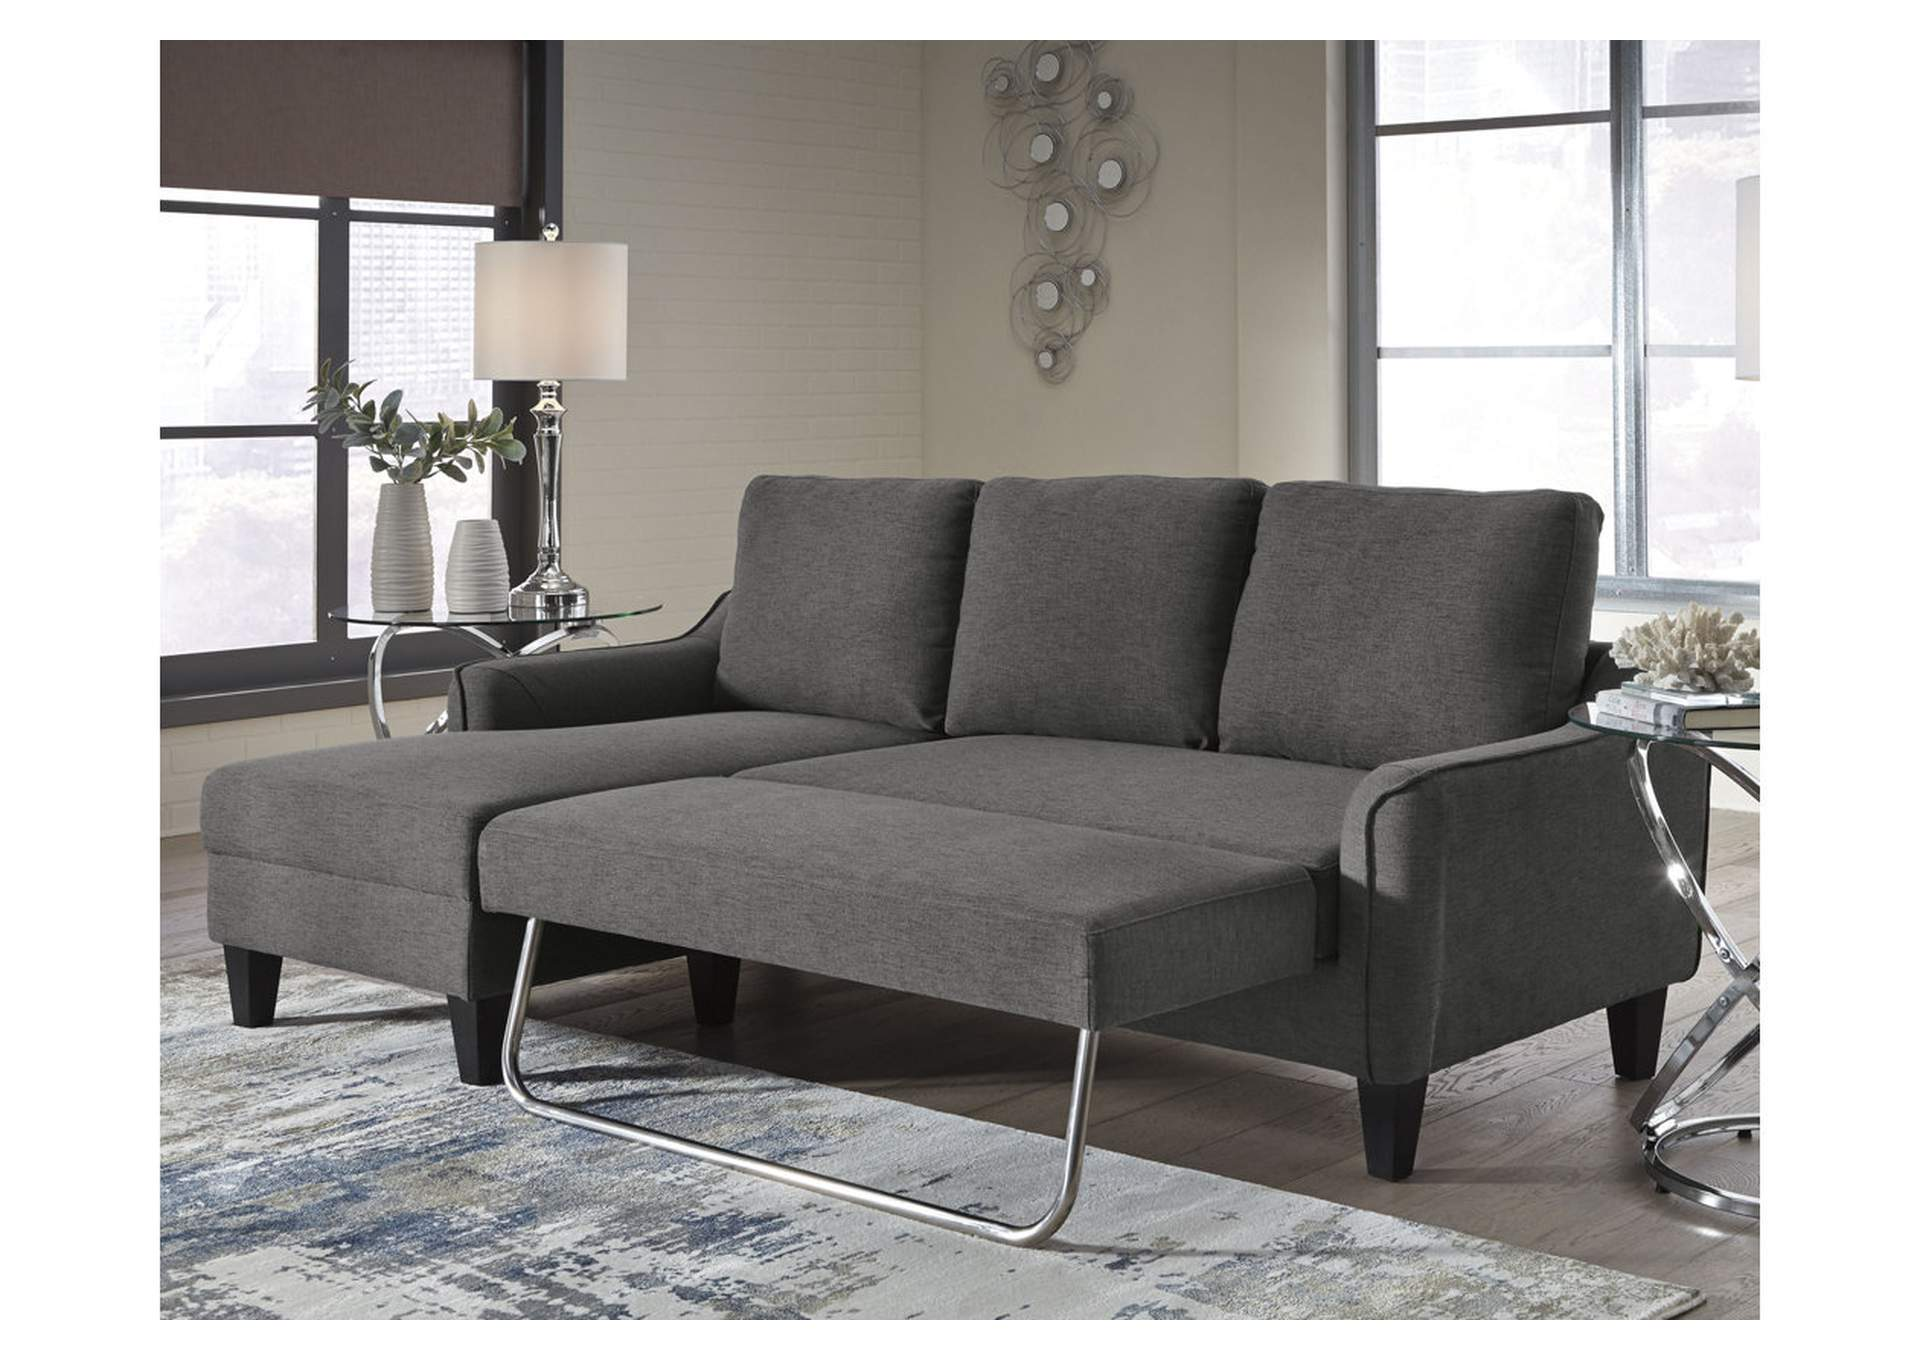 Jarreau Gray Queen Sleeper Sofa,Signature Design By Ashley